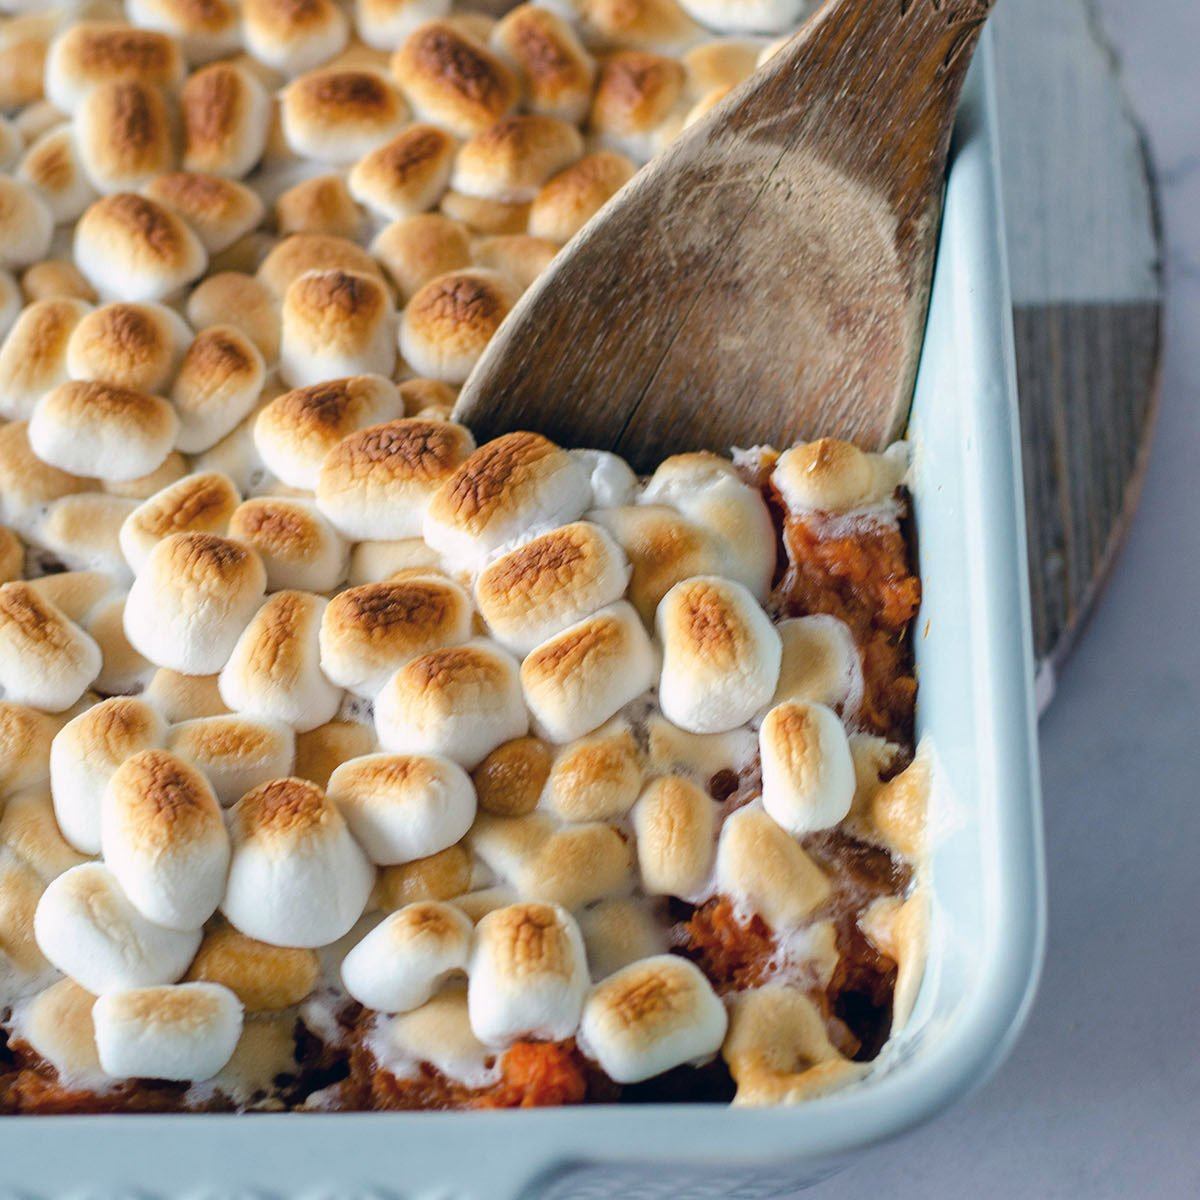 wooden spoon dipping into sweet potato casserole topped with marshmallows